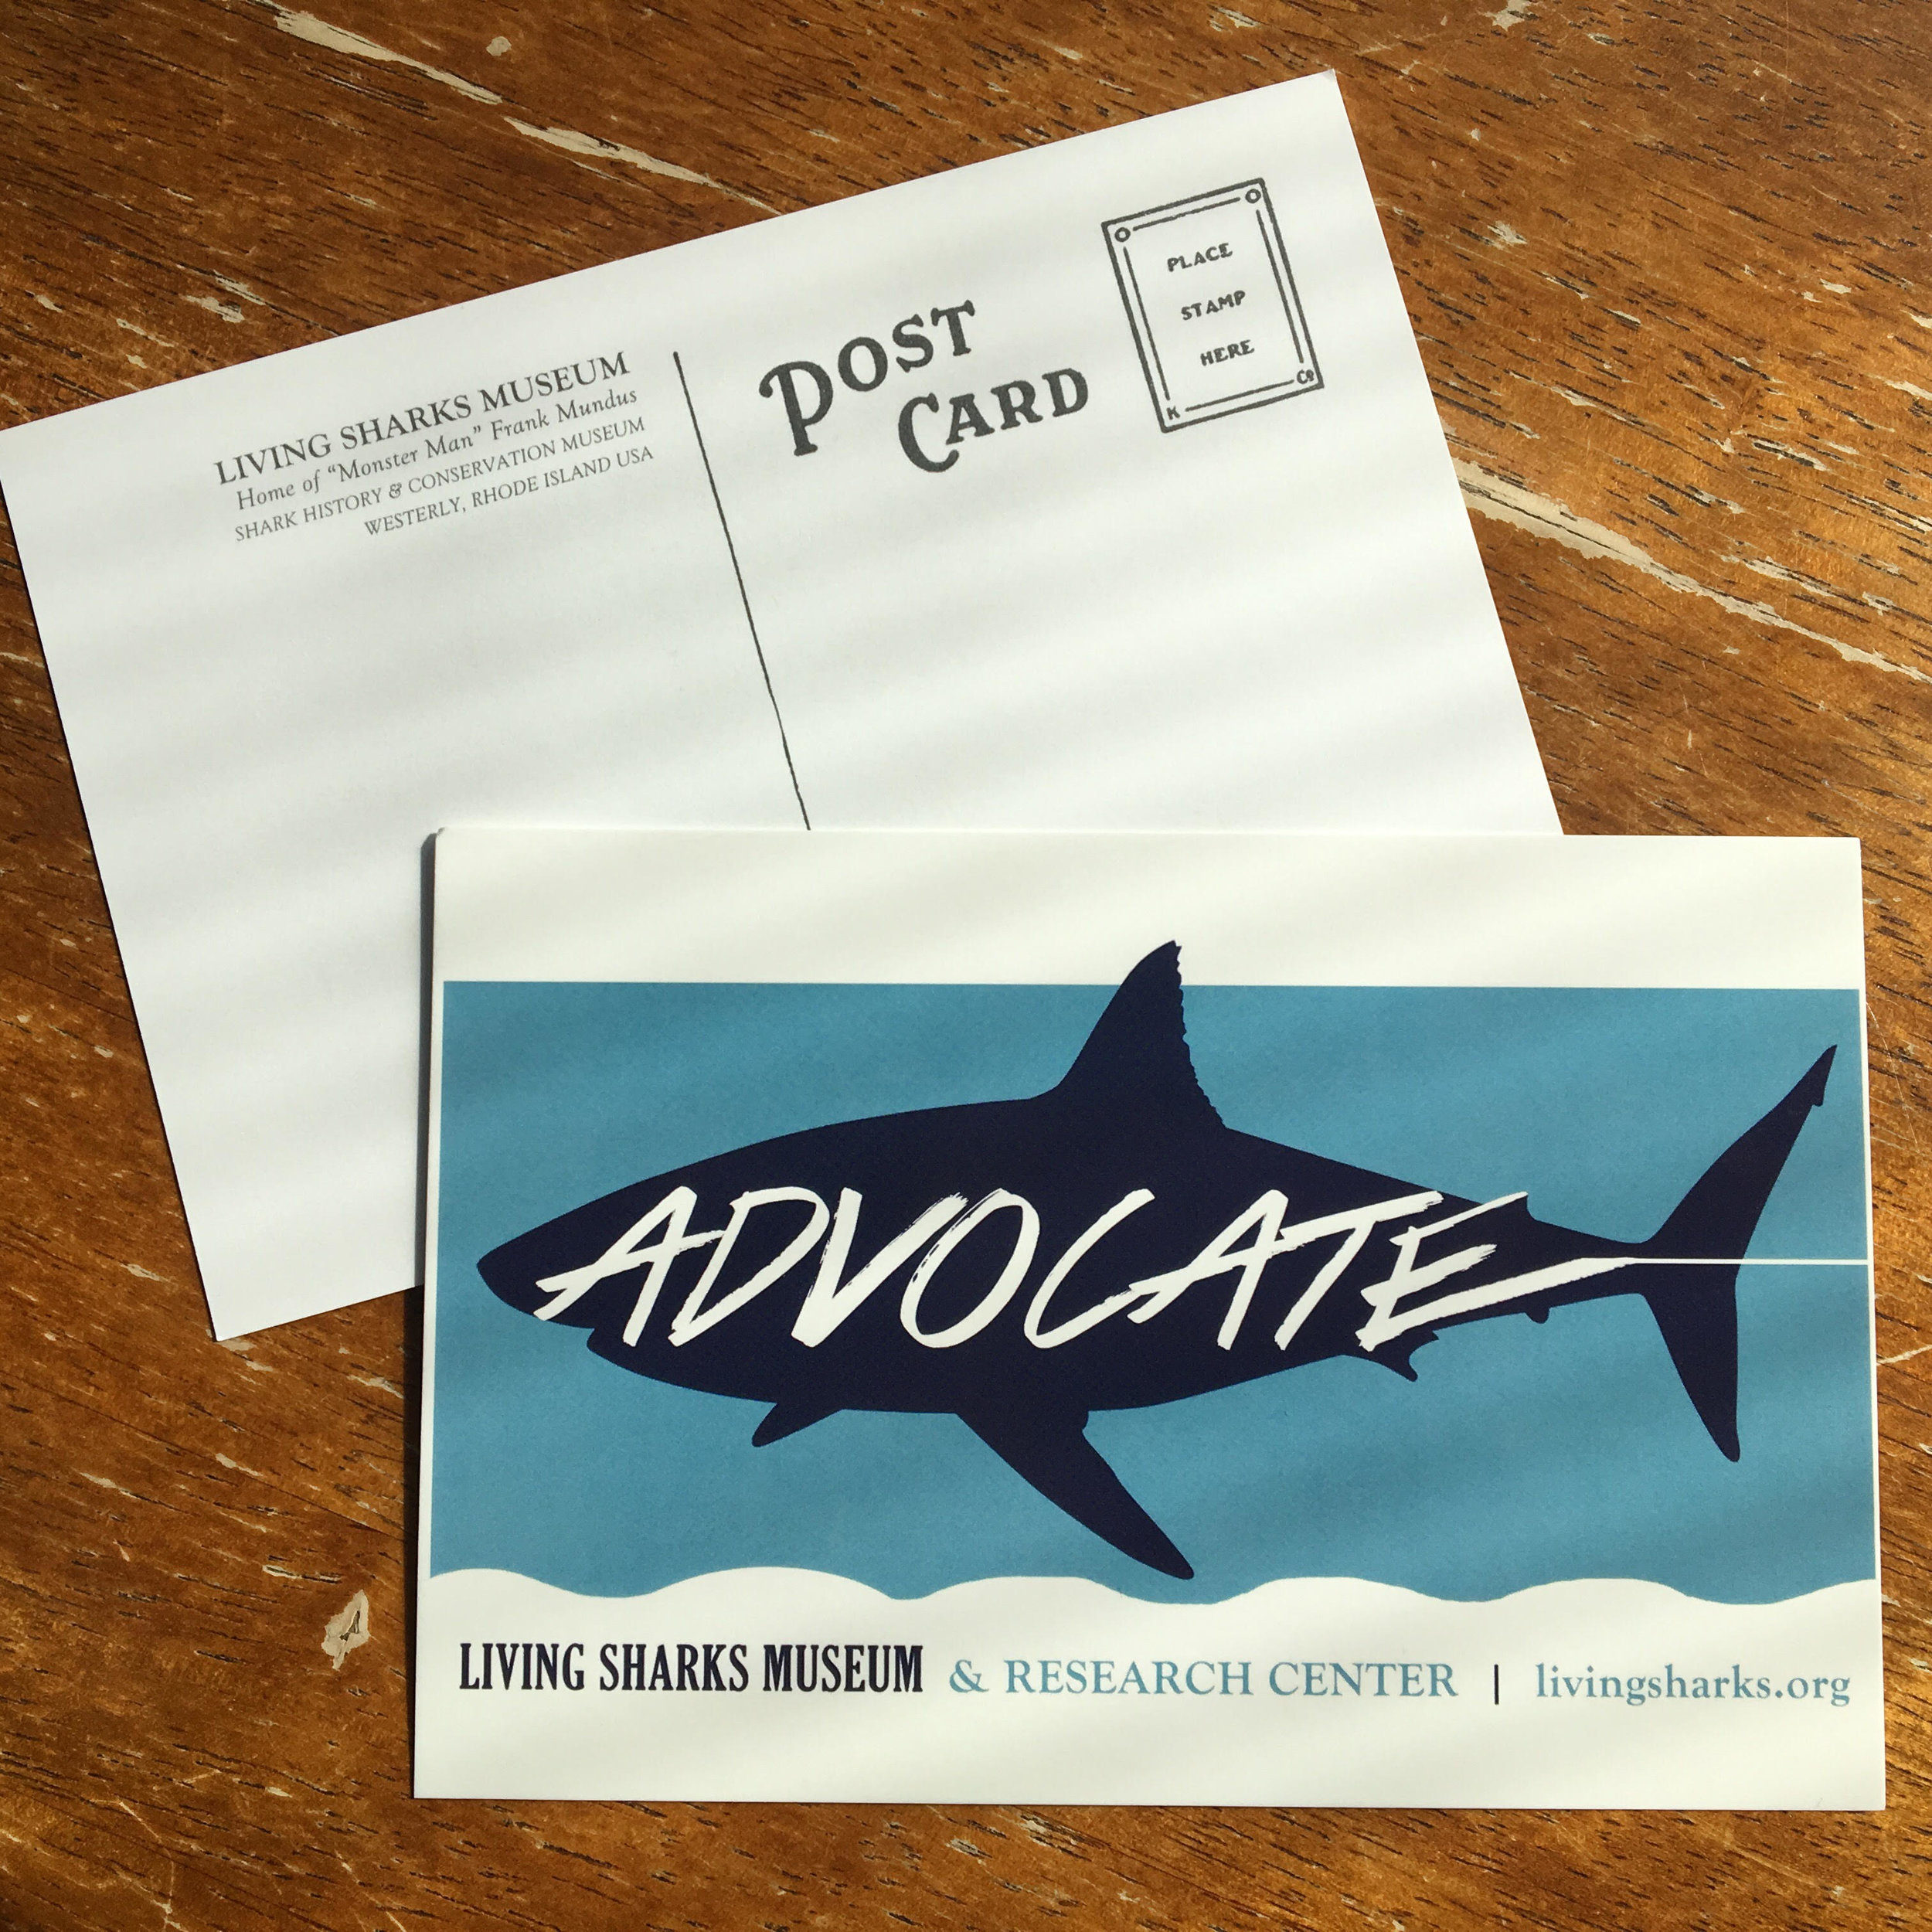 LIVING SHARKS MUSEUM POSTCARDS - Available onsite in the Living Sharks Museum!